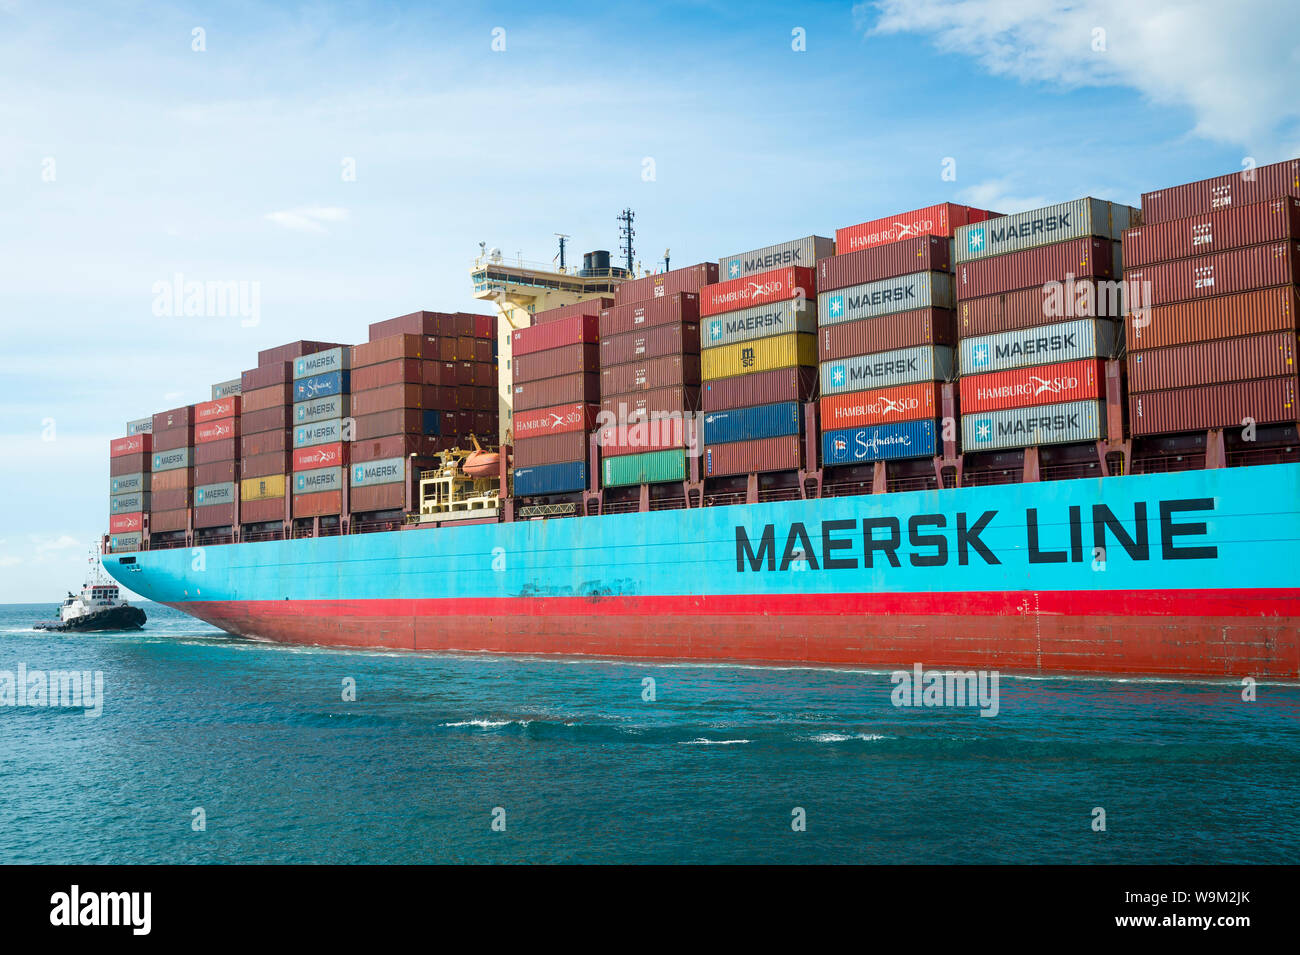 MIAMI - AUGUST 12, 2019: A Maersk container ship passes